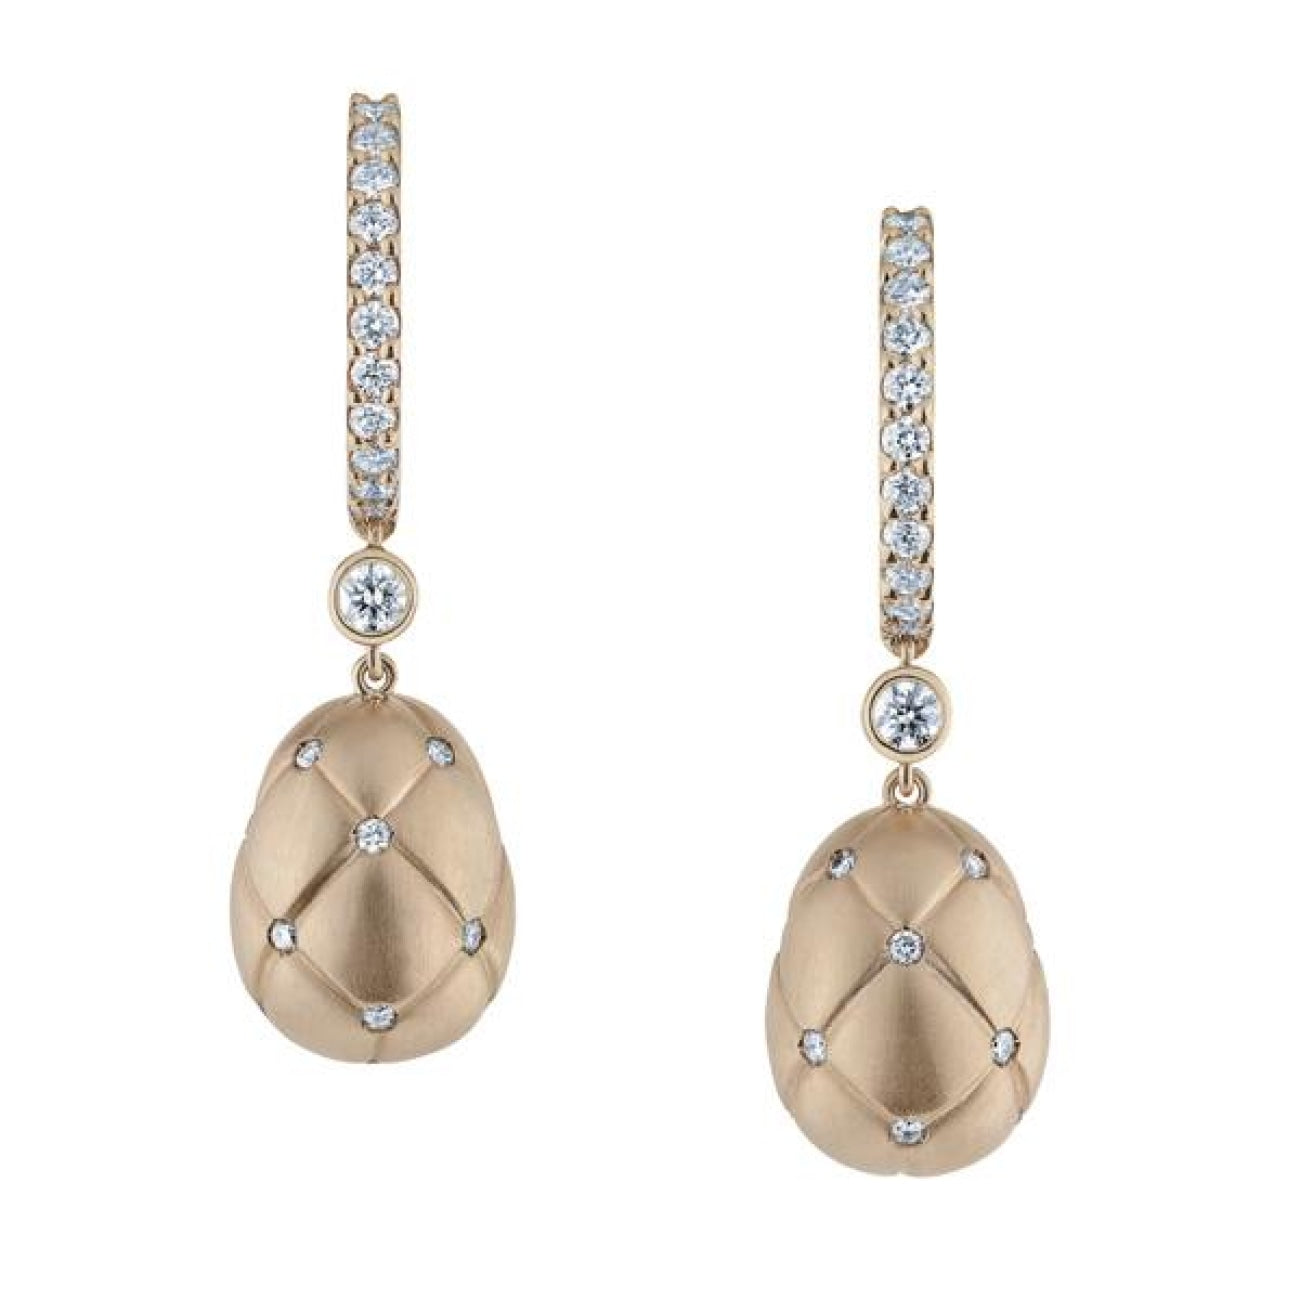 Fabergé Jewelry - Treillage Diamond Rose Gold Matt Drop Earrings | Manfredi Jewels